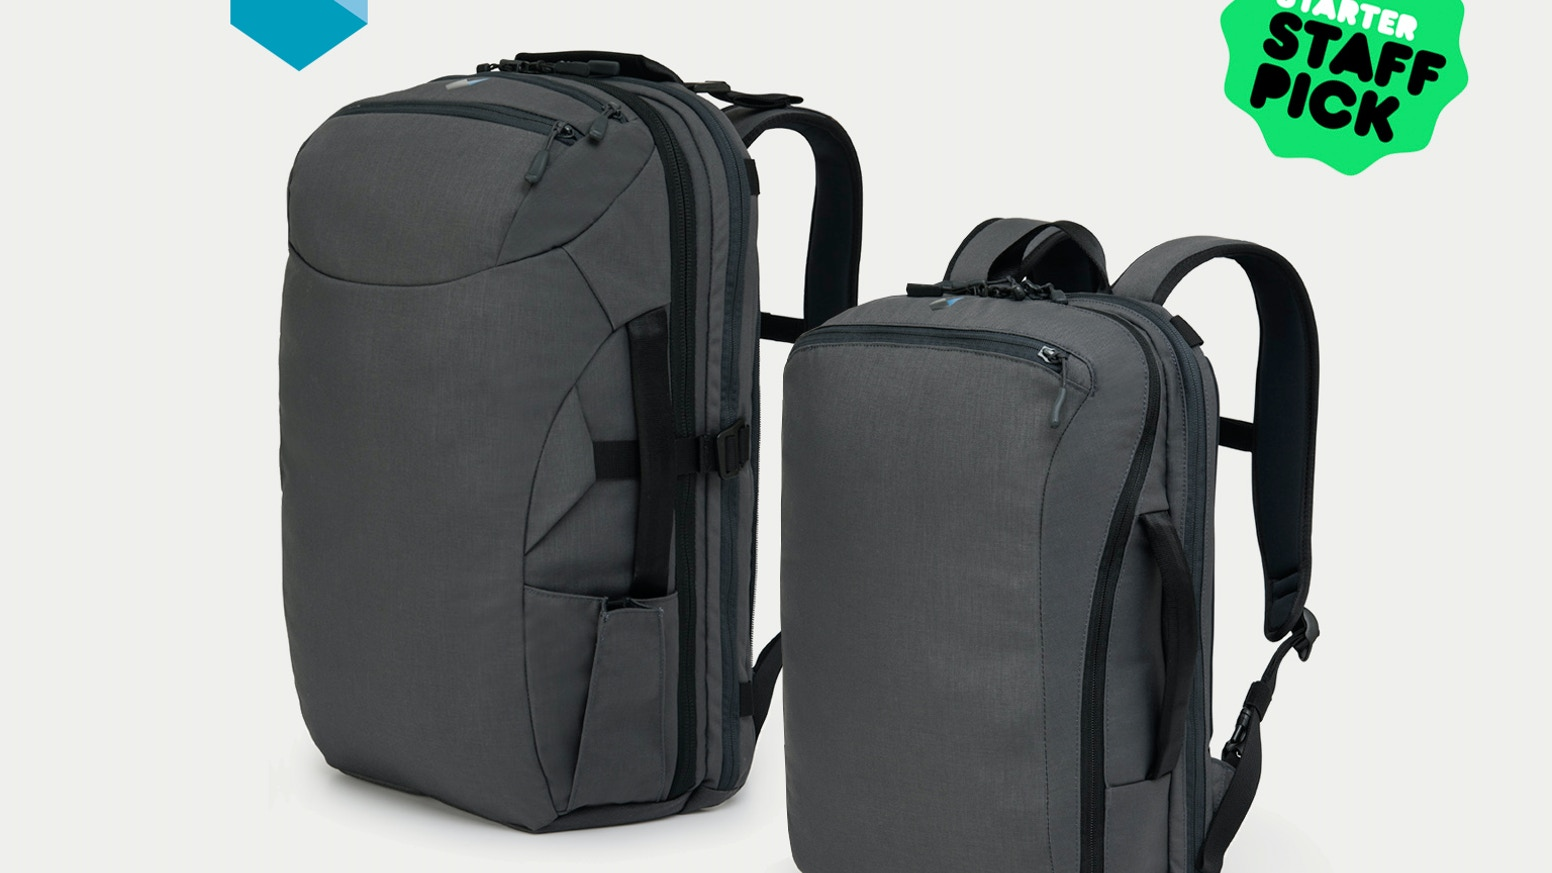 Backpacks designed for your life on the move. Sleek, durable & ready for any challenge – it's the new Minaal Bag Ecosystem.